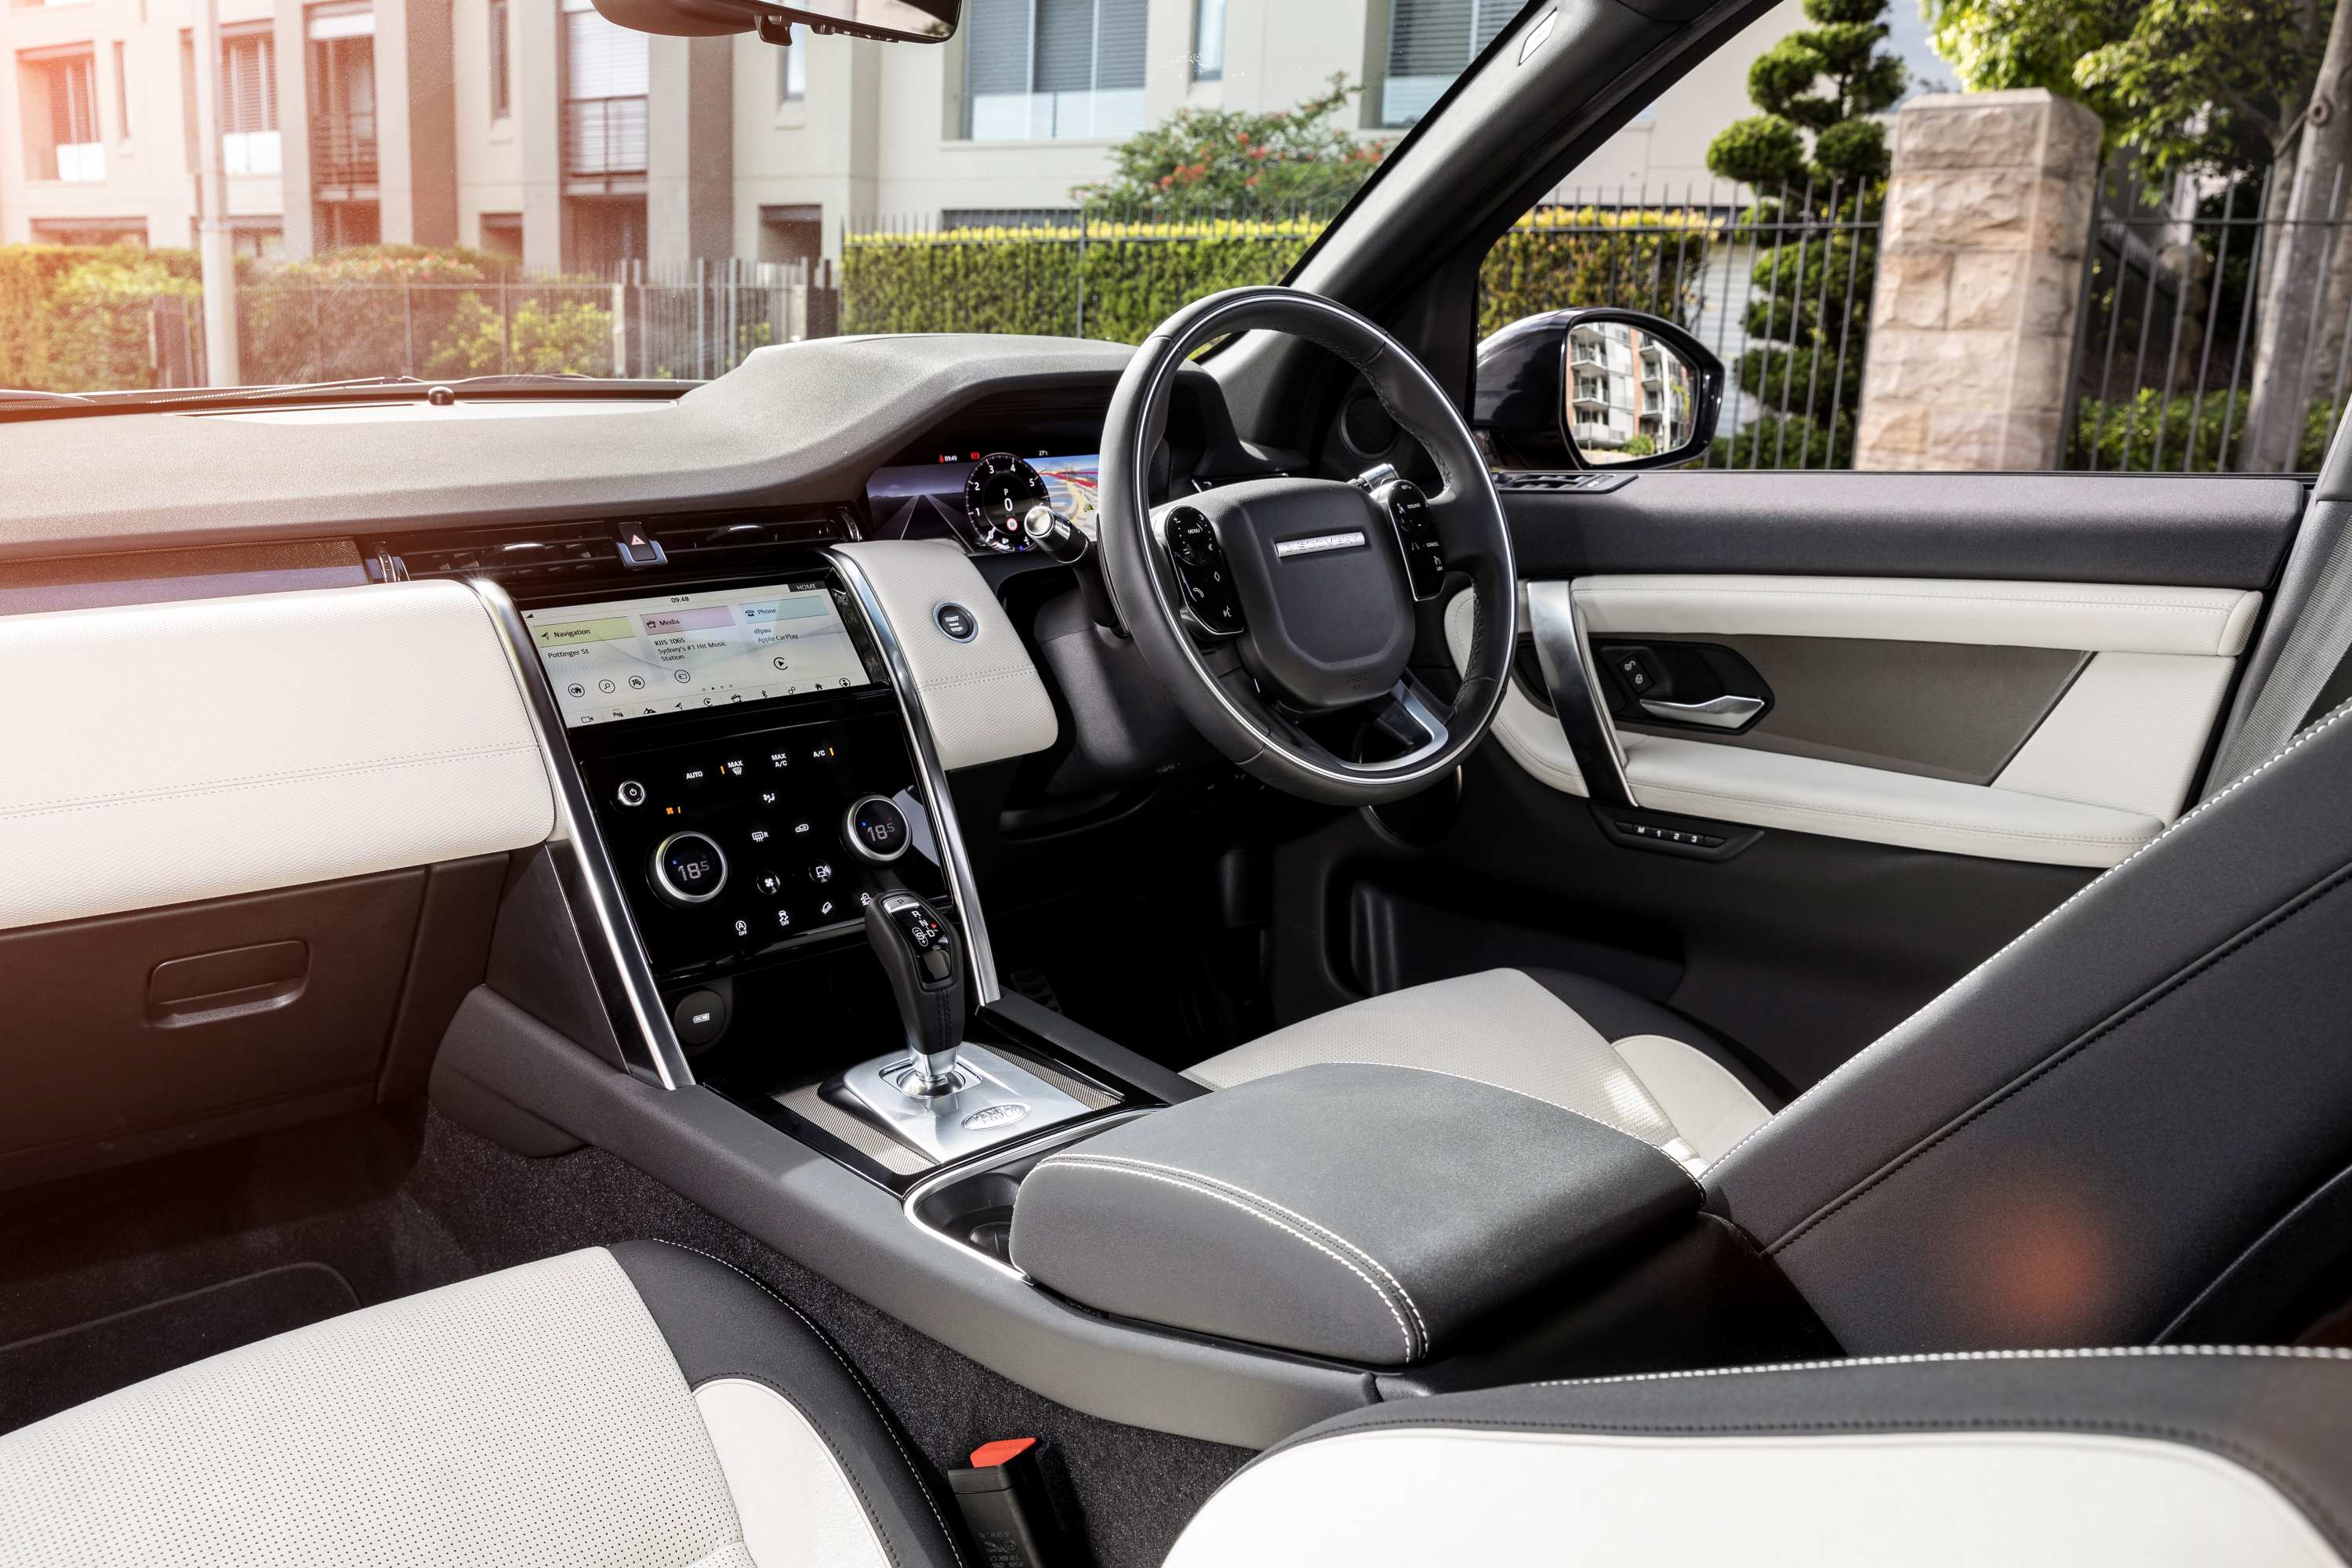 2021 Land Rover Discovery Sport R-Dynamic SE interior 2